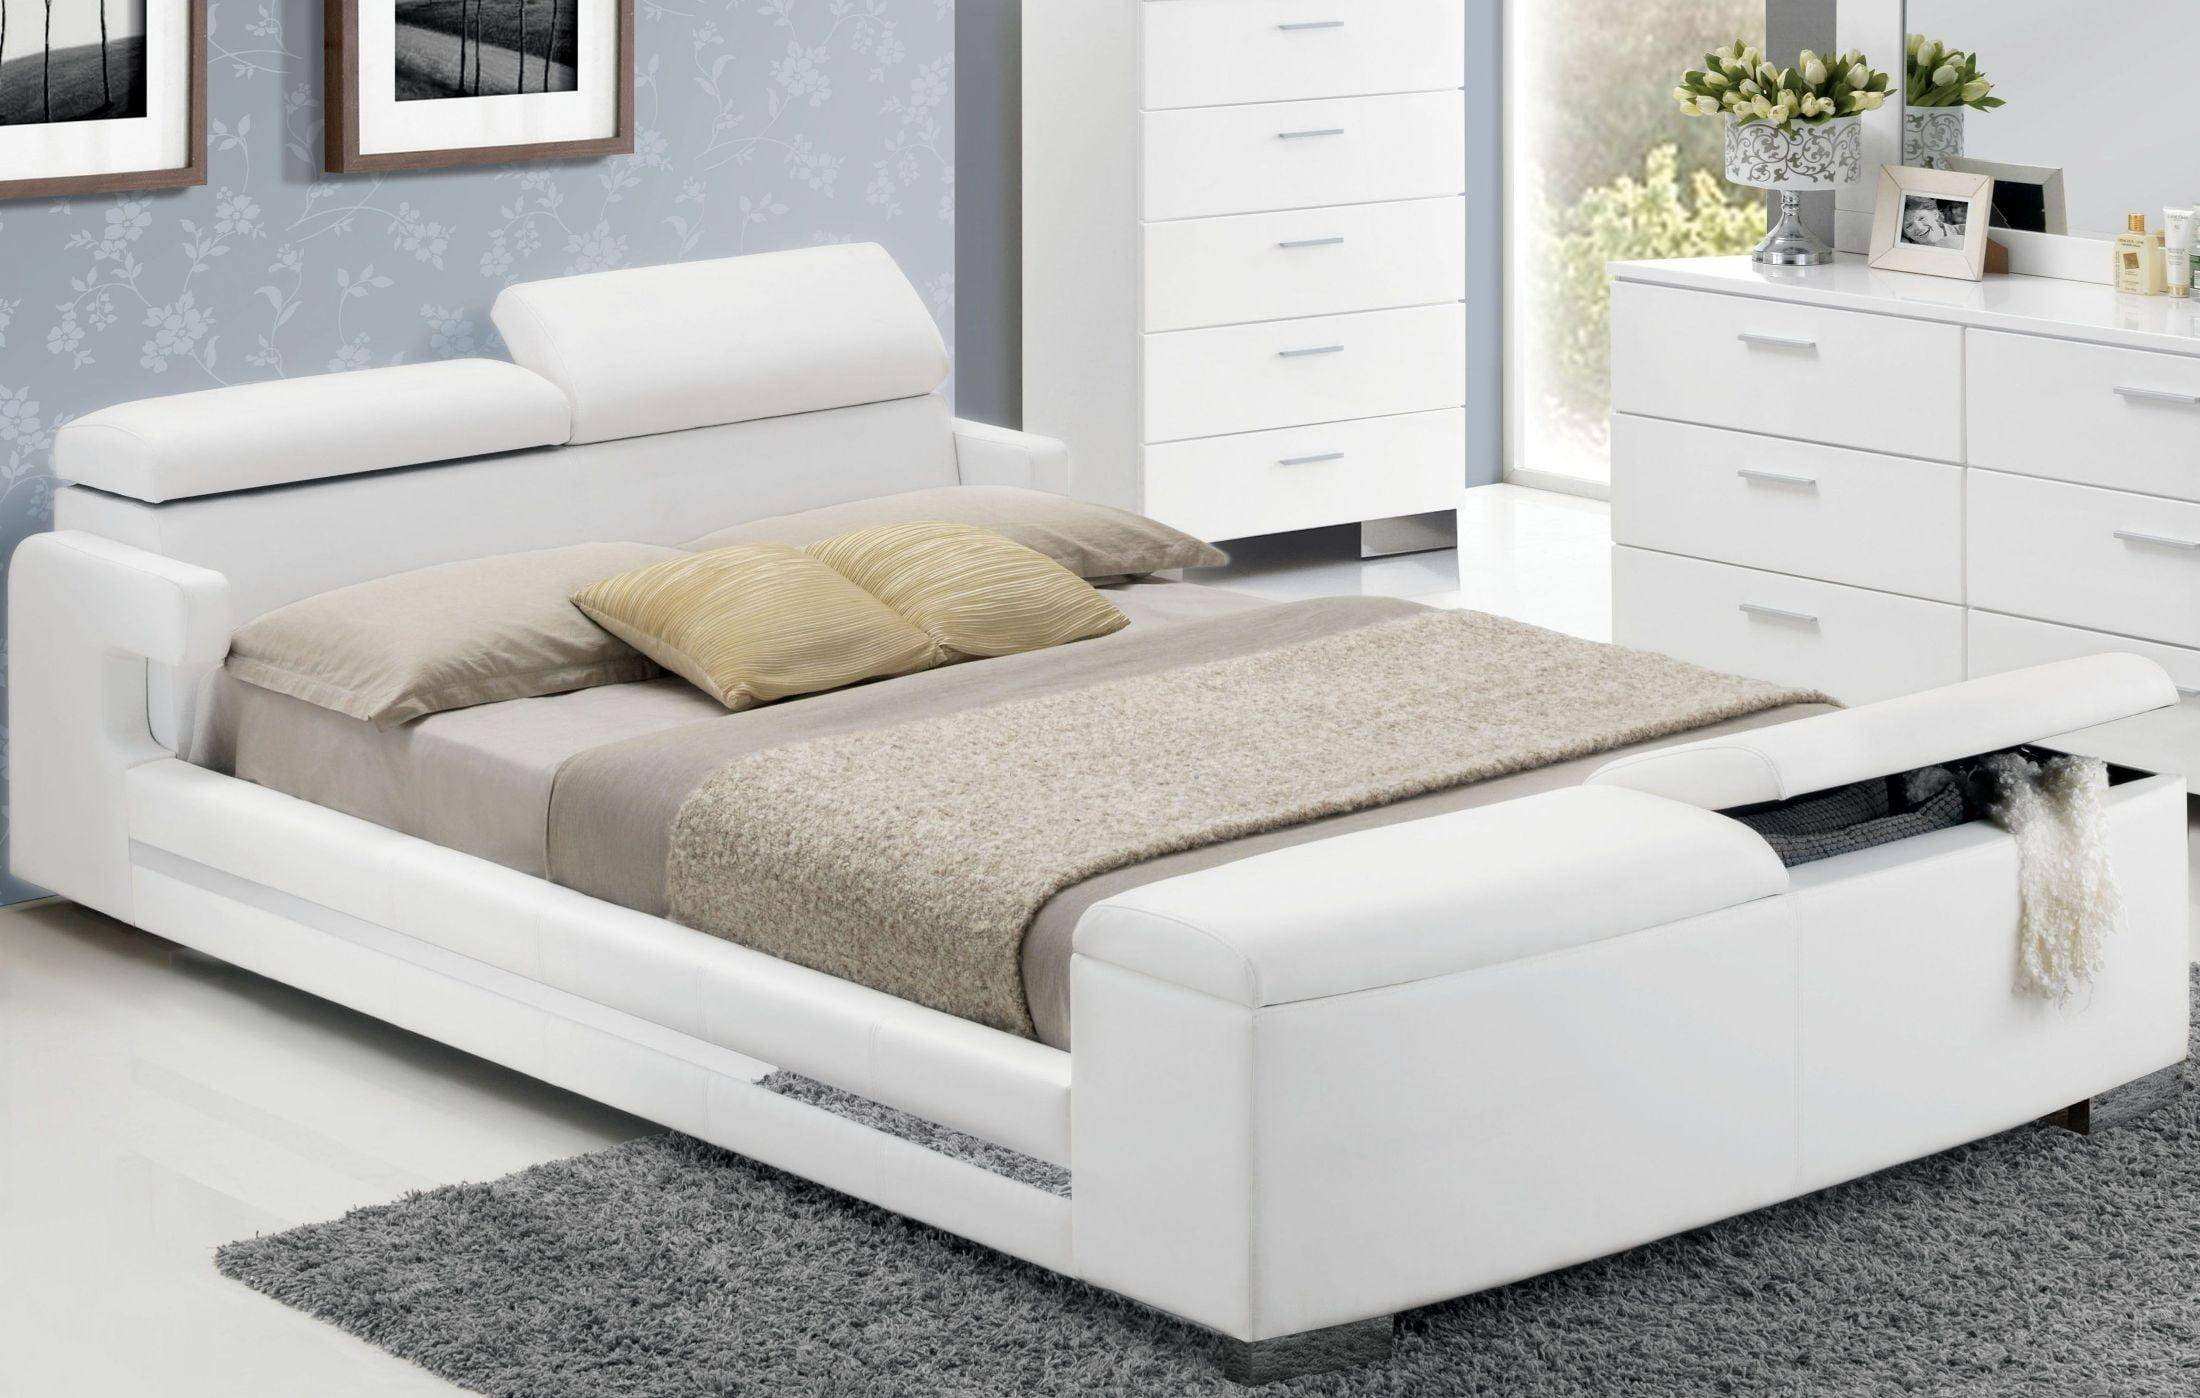 Queen Storage Bedroom Set 5p White Polyurethane 20680q Layla Acme Contemporary Layla 20680q Set 5 Buy Online